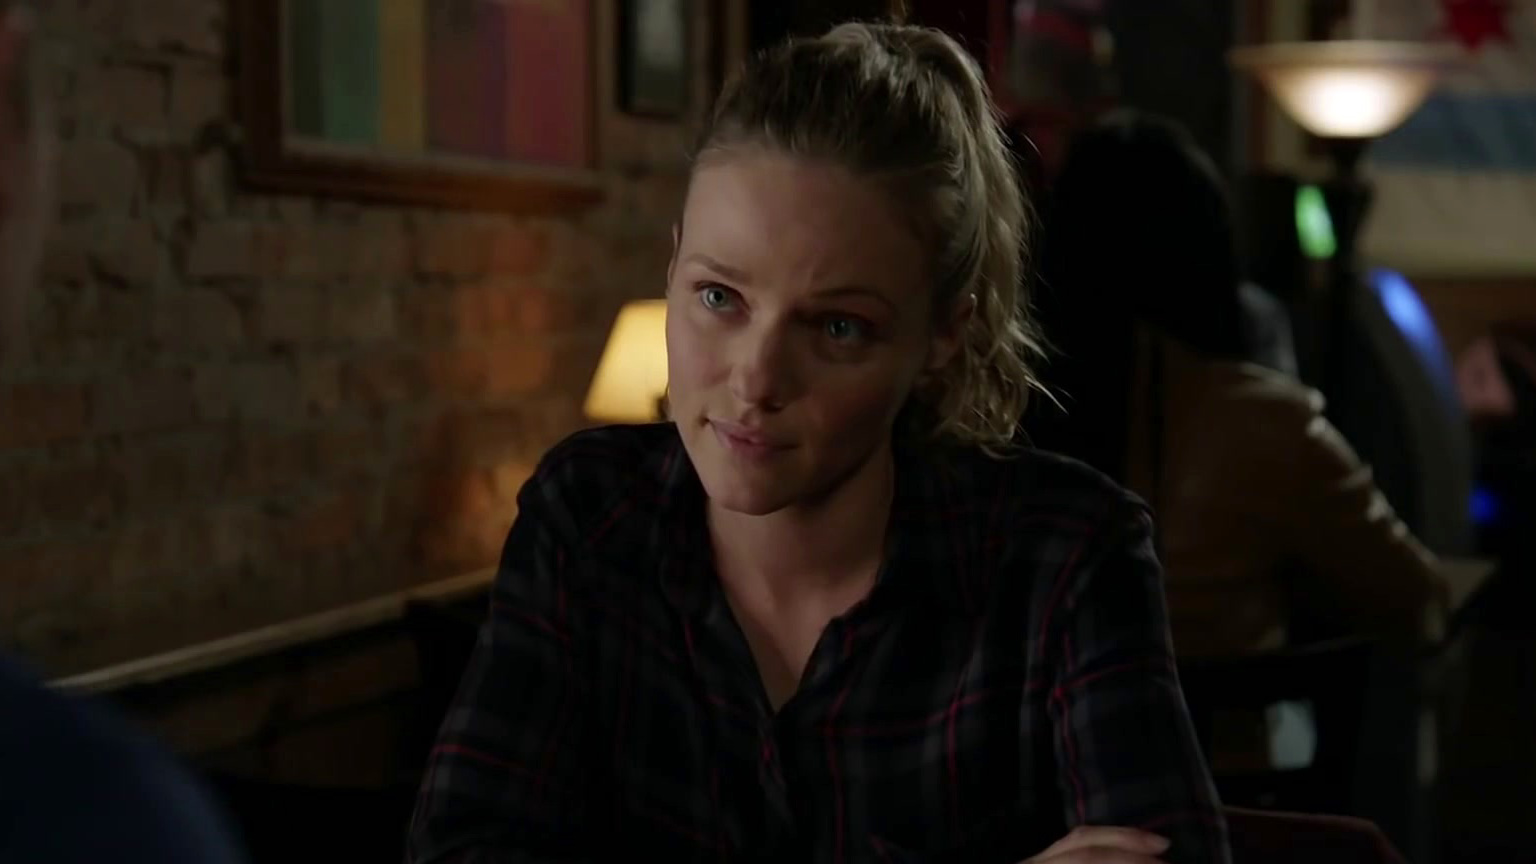 Chicago P.D.: Halstead And Upton Let Their True Feelings Be Known